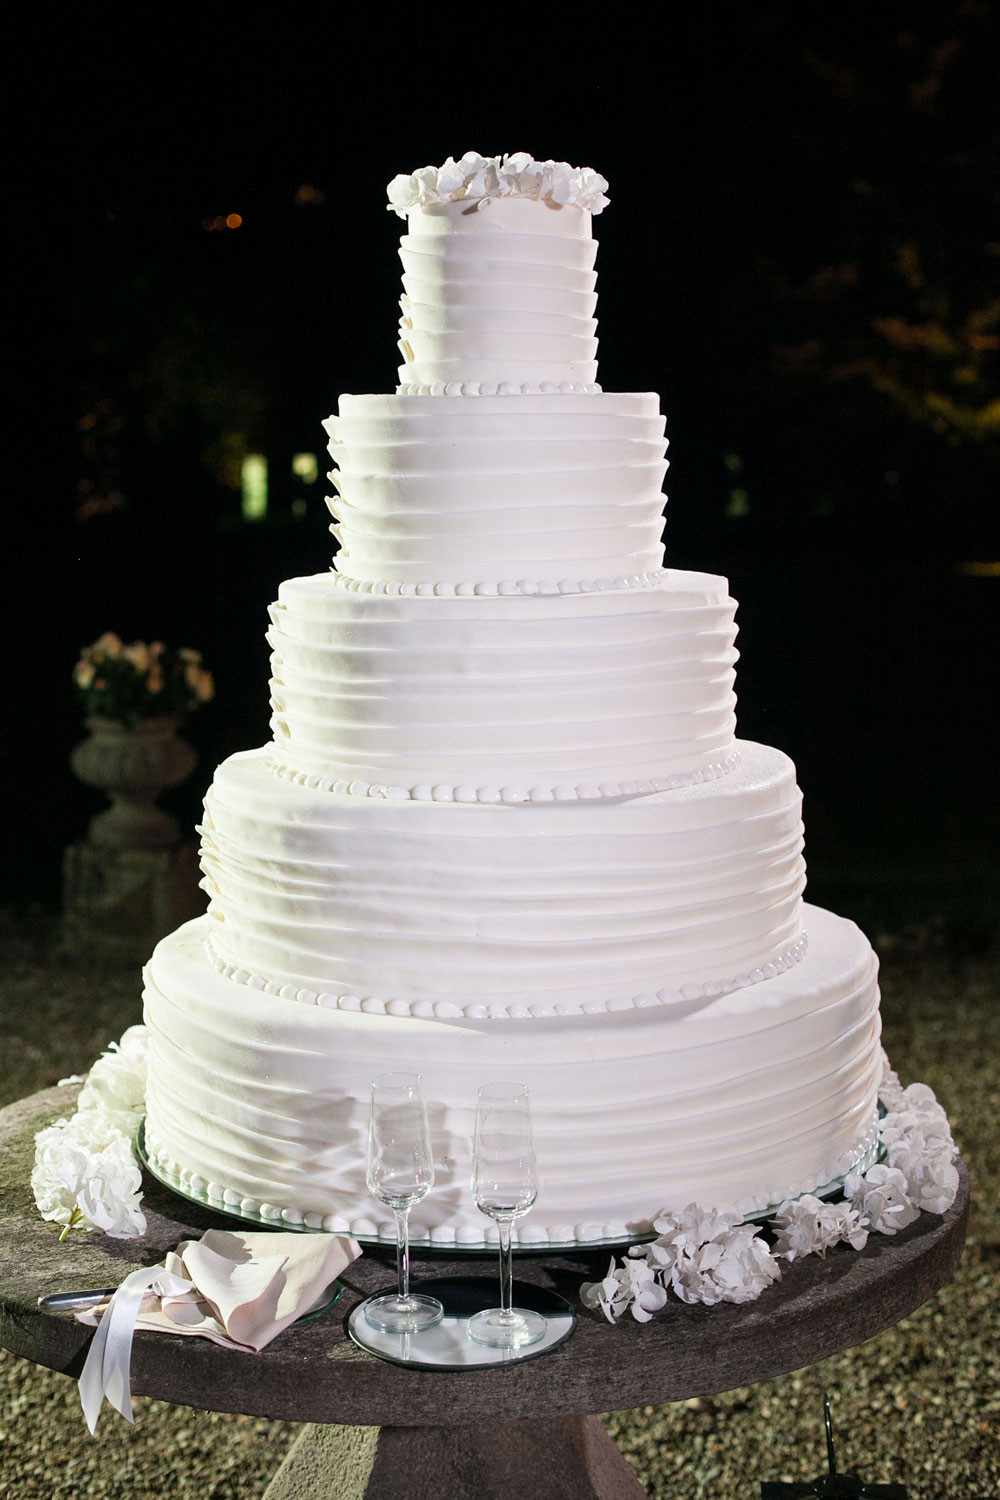 Sweet inspirations: Having your wedding cake and eating it, too